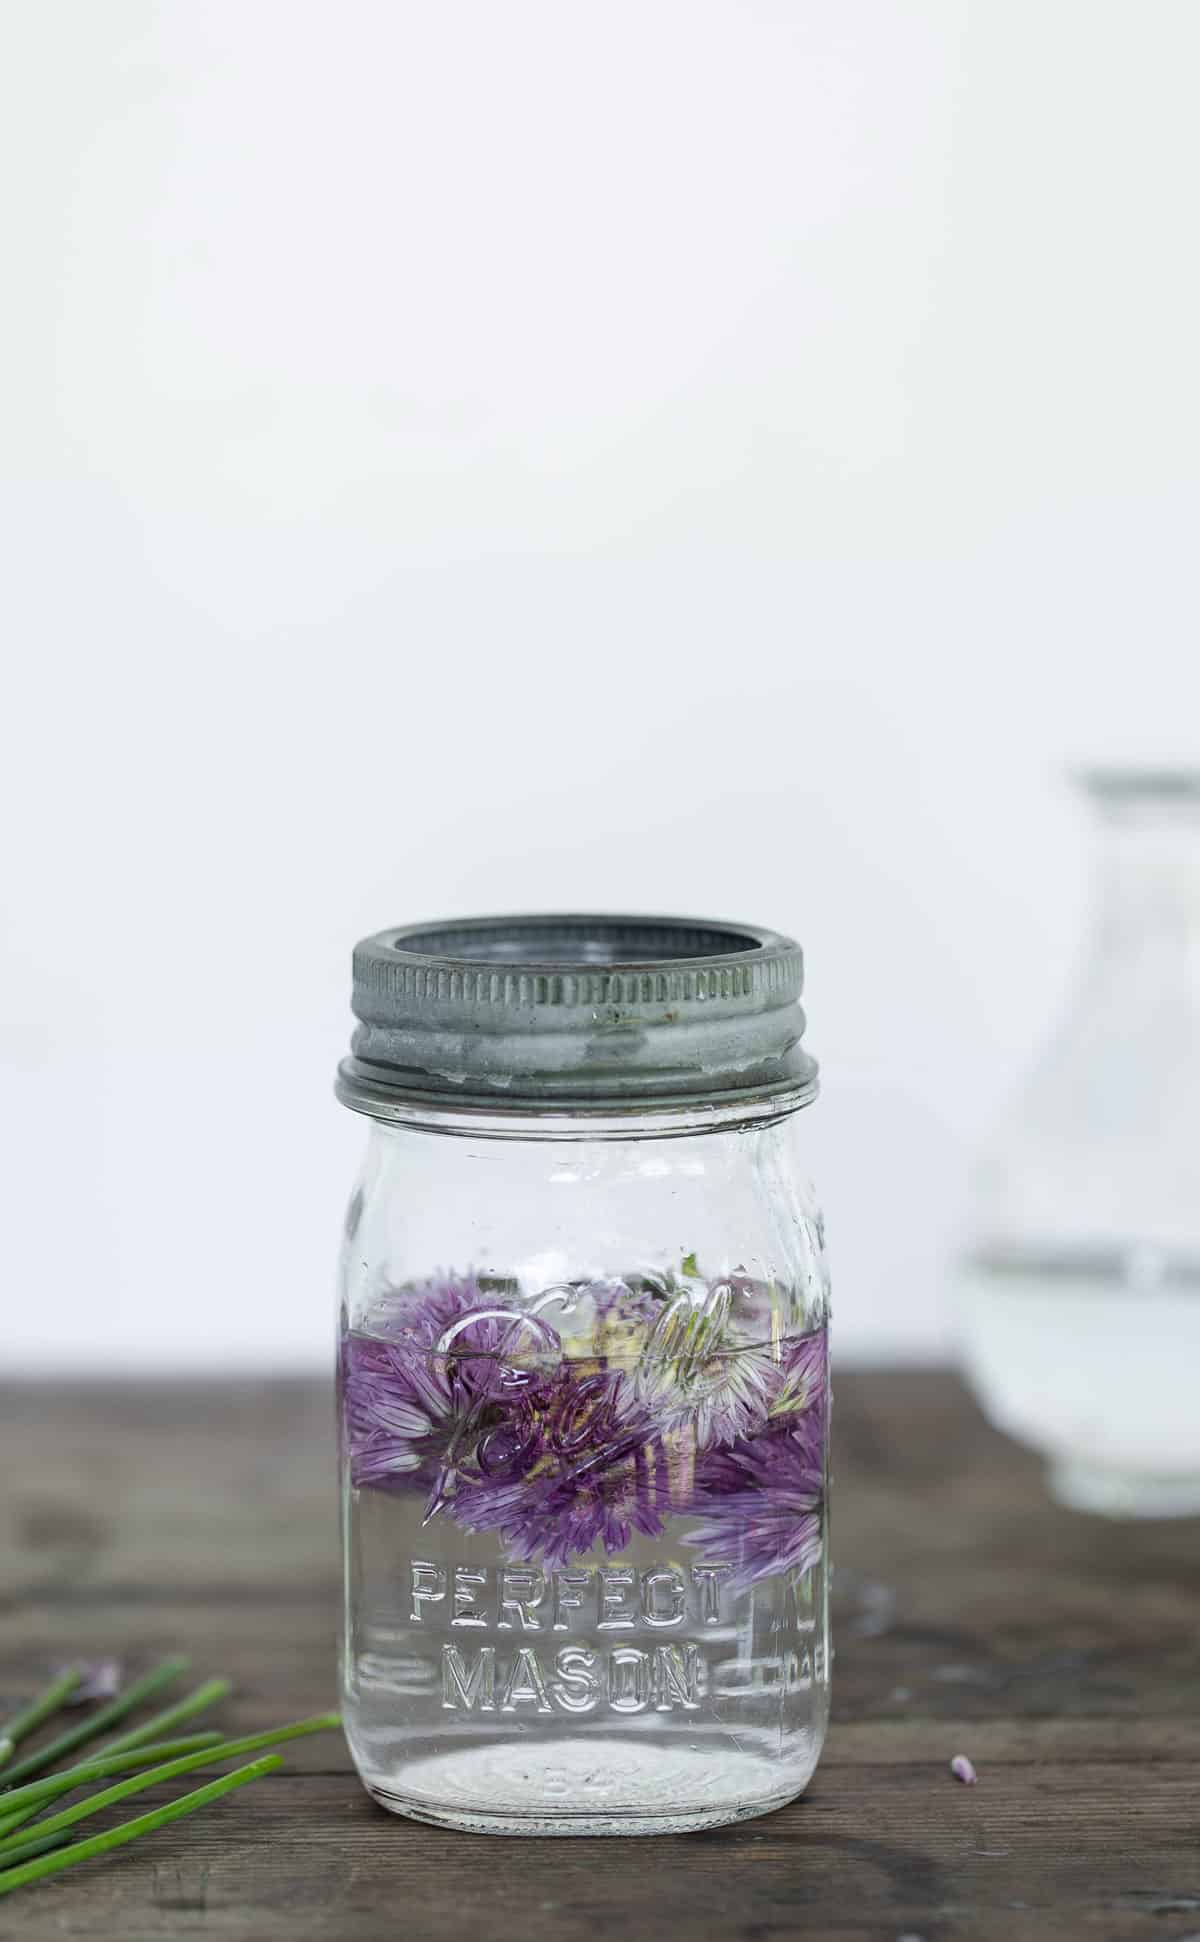 To make pickled chive blossoms simply add steeped blossoms to a small jar and fill with a mixture of vinegar, water, sugar and salt. Refrigerate and consume pickled chive blossoms within a week.